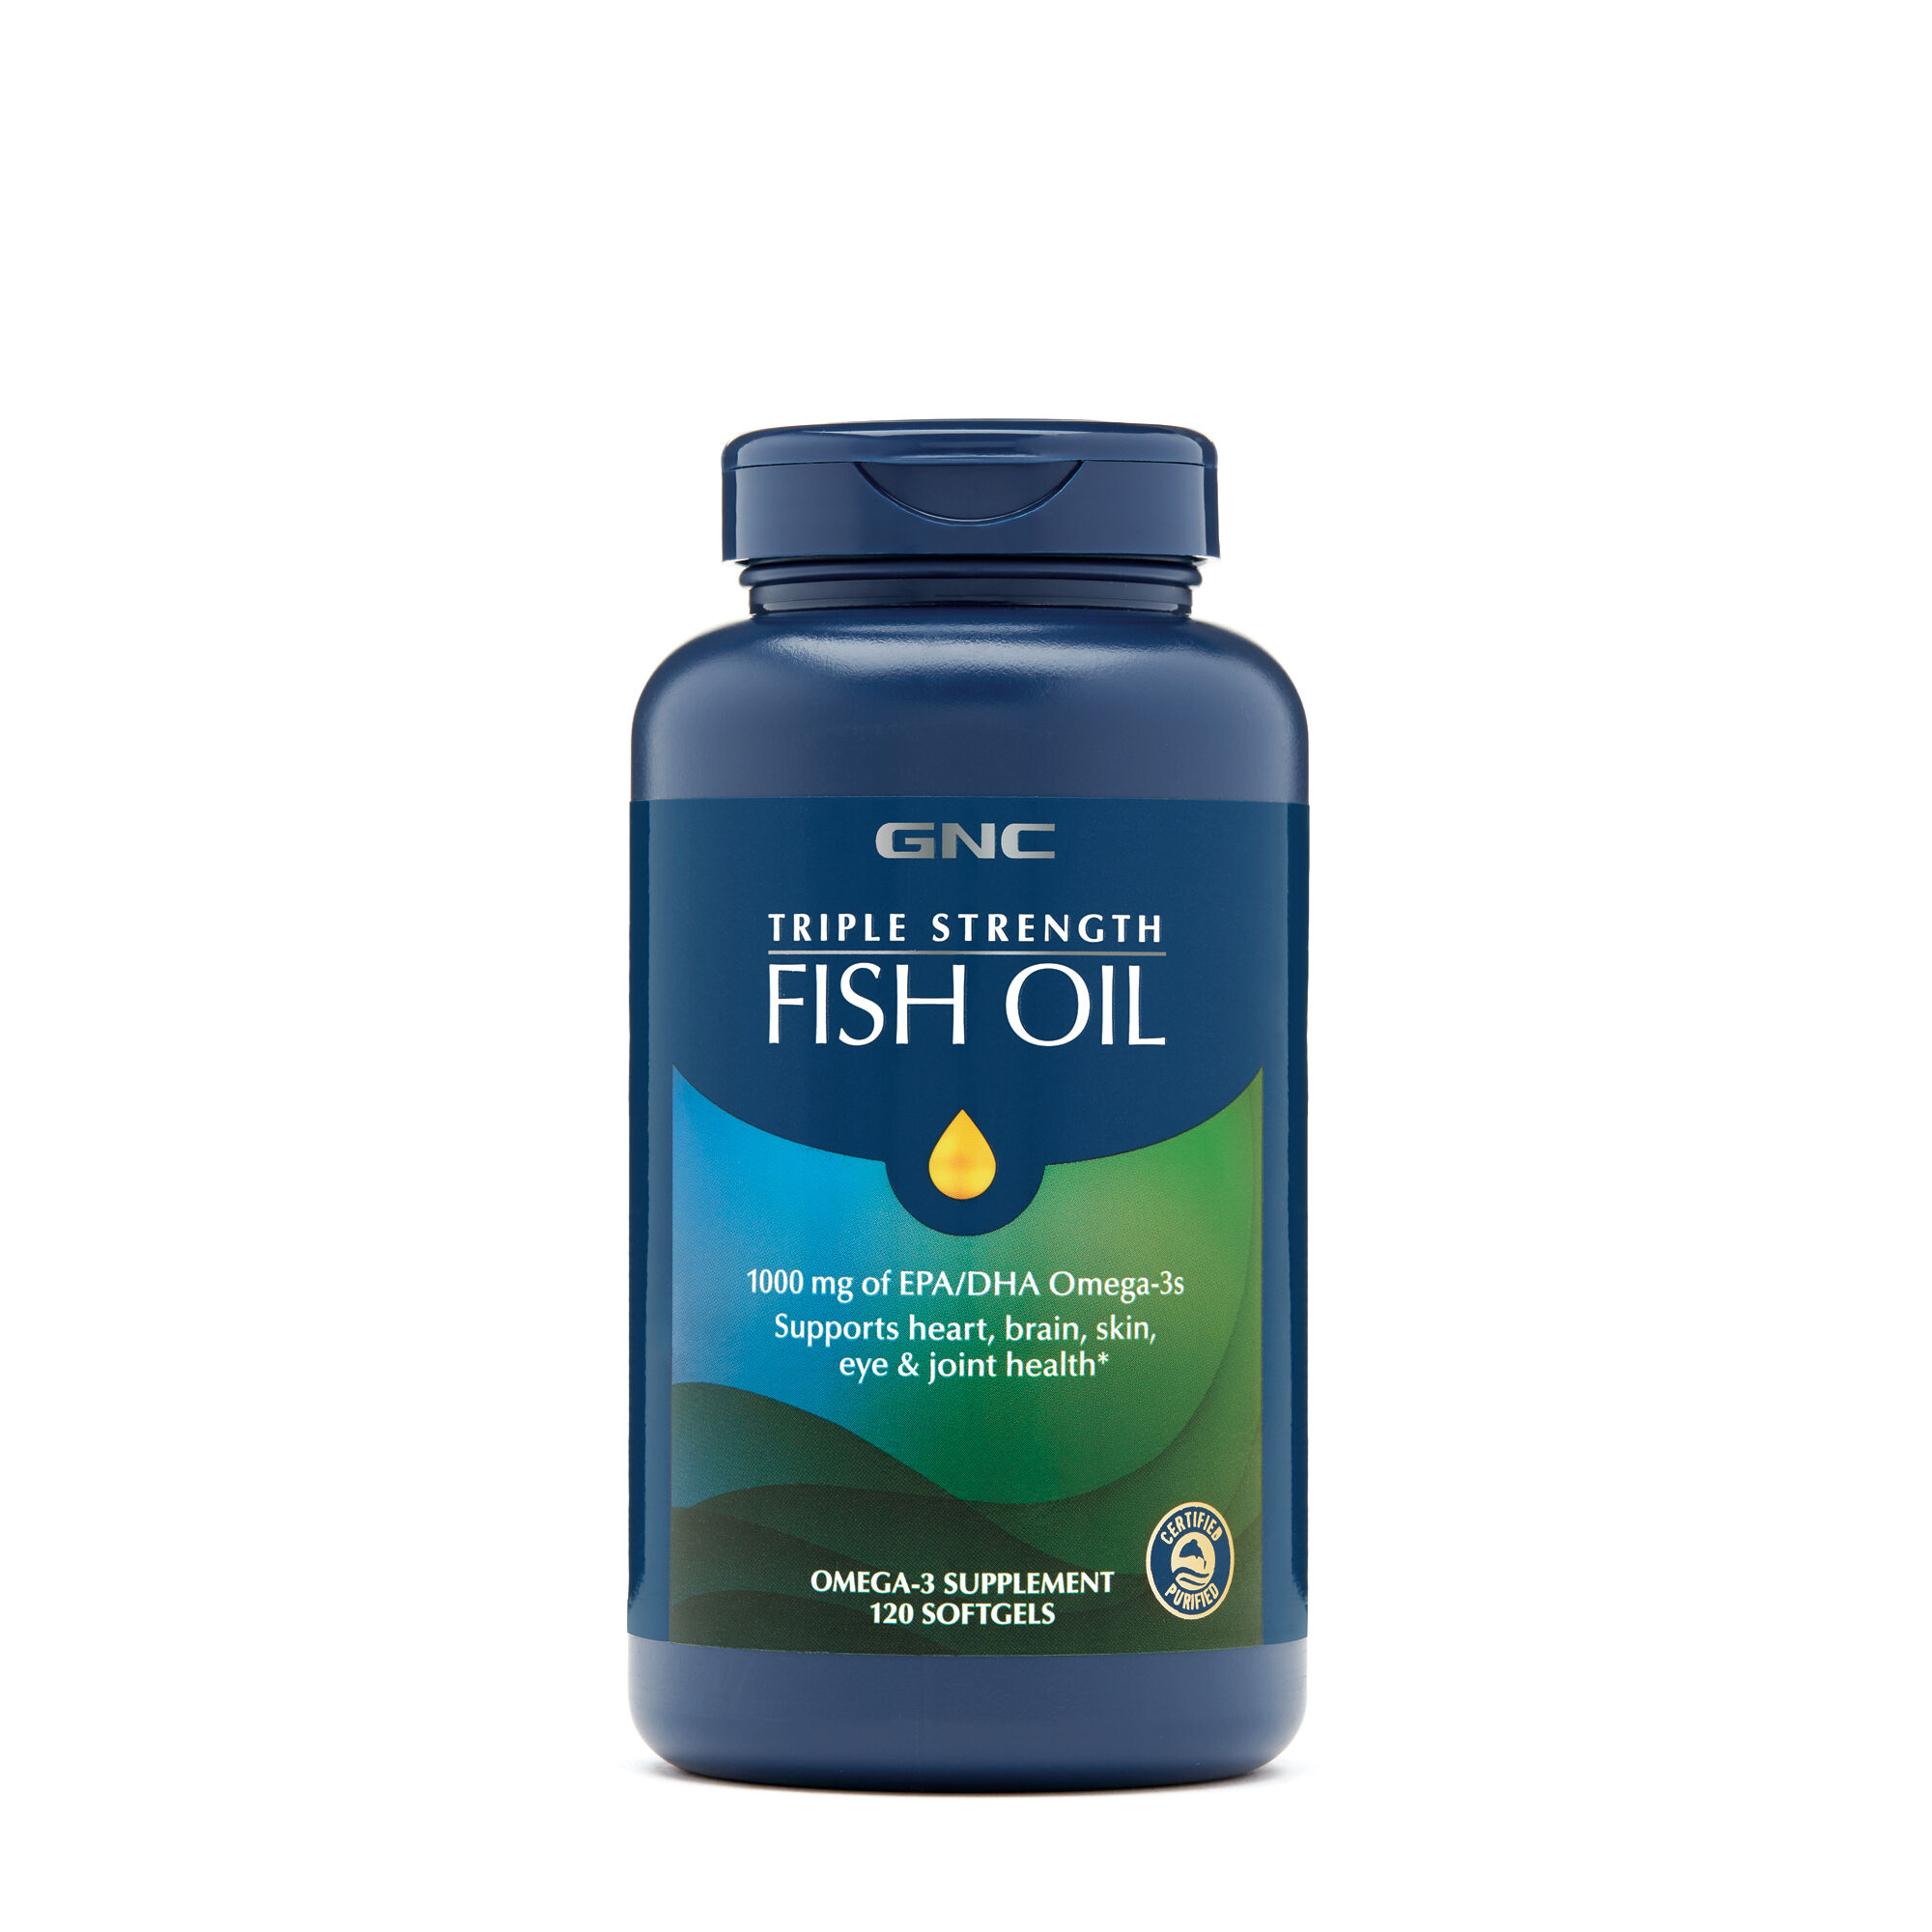 Gnc best selling testosterone supplement depth torture gq for Fish oil for weight loss reviews